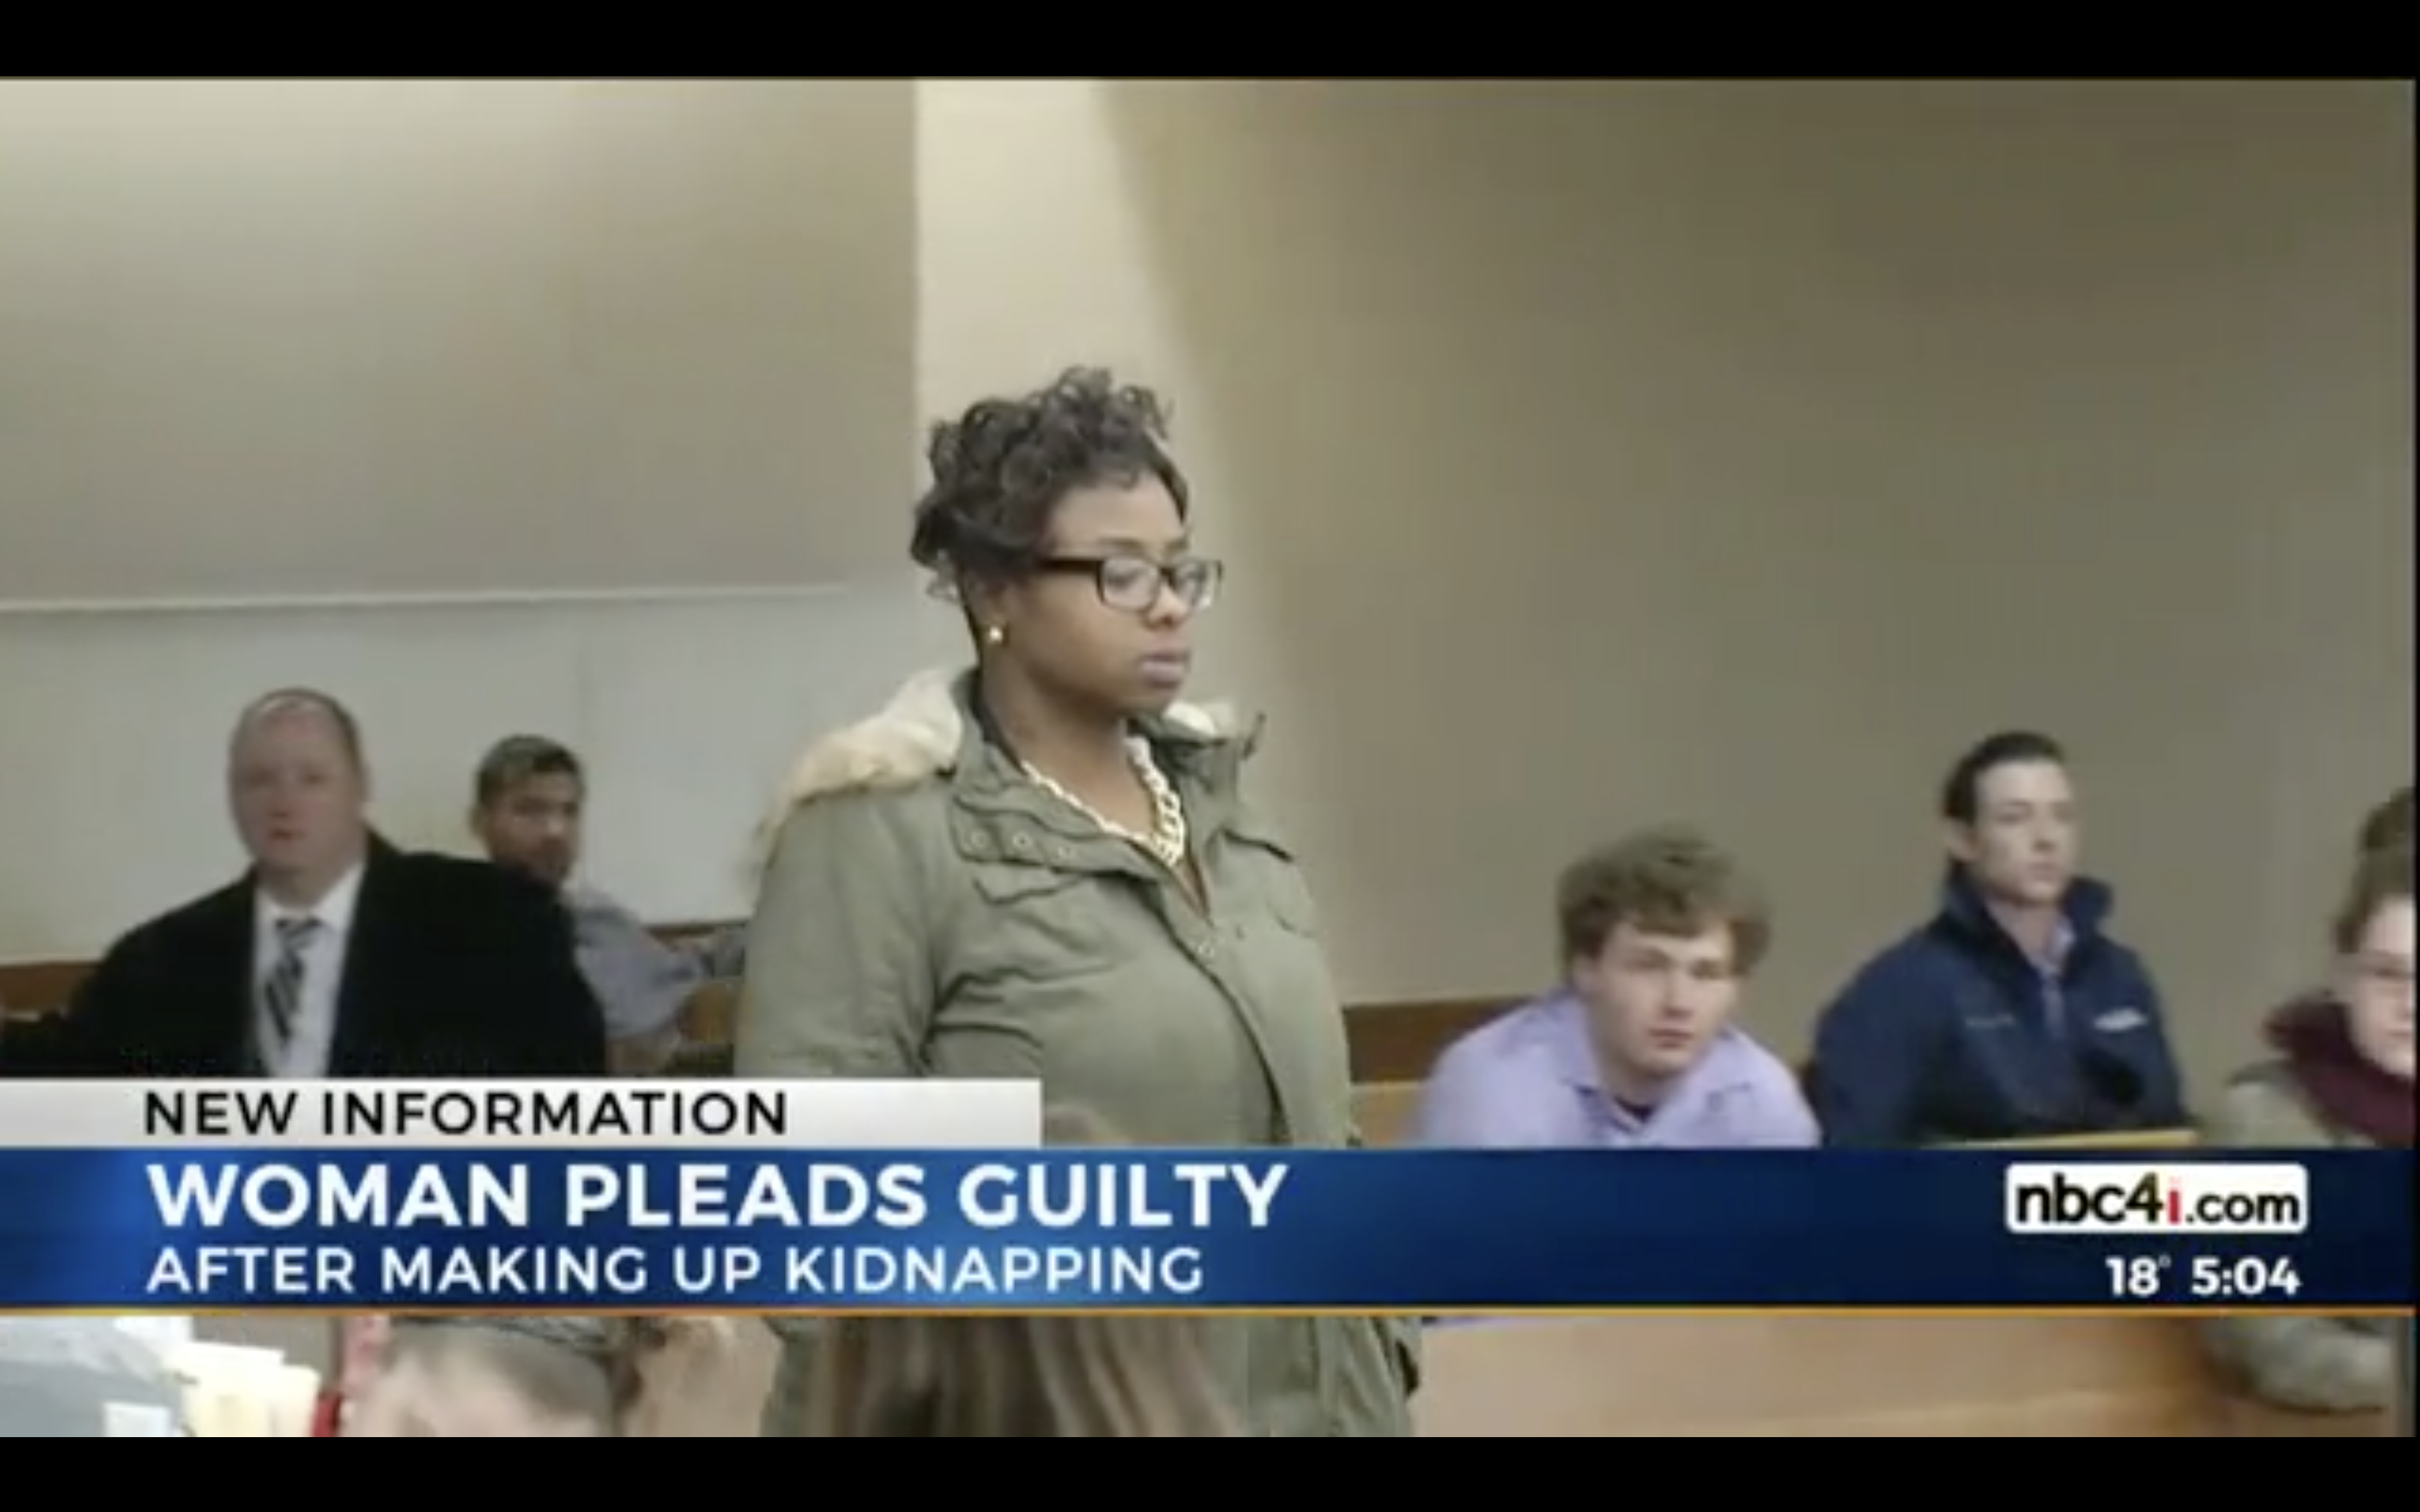 A Columbus, Ohio, woman pleads guilty